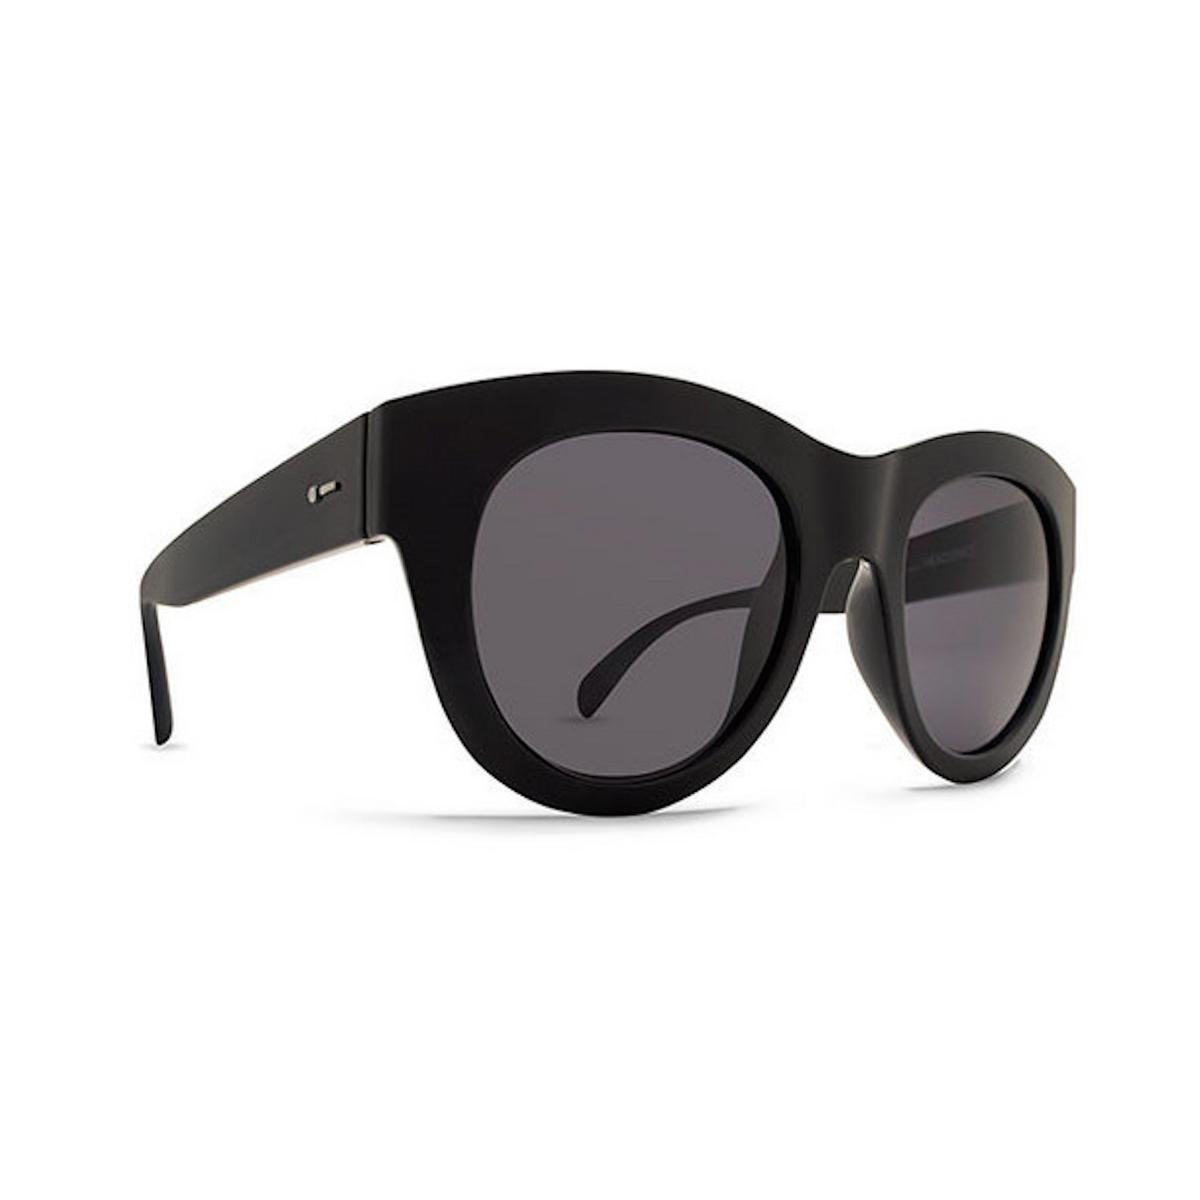 Dot Dash Headspace Women's Sunglasses